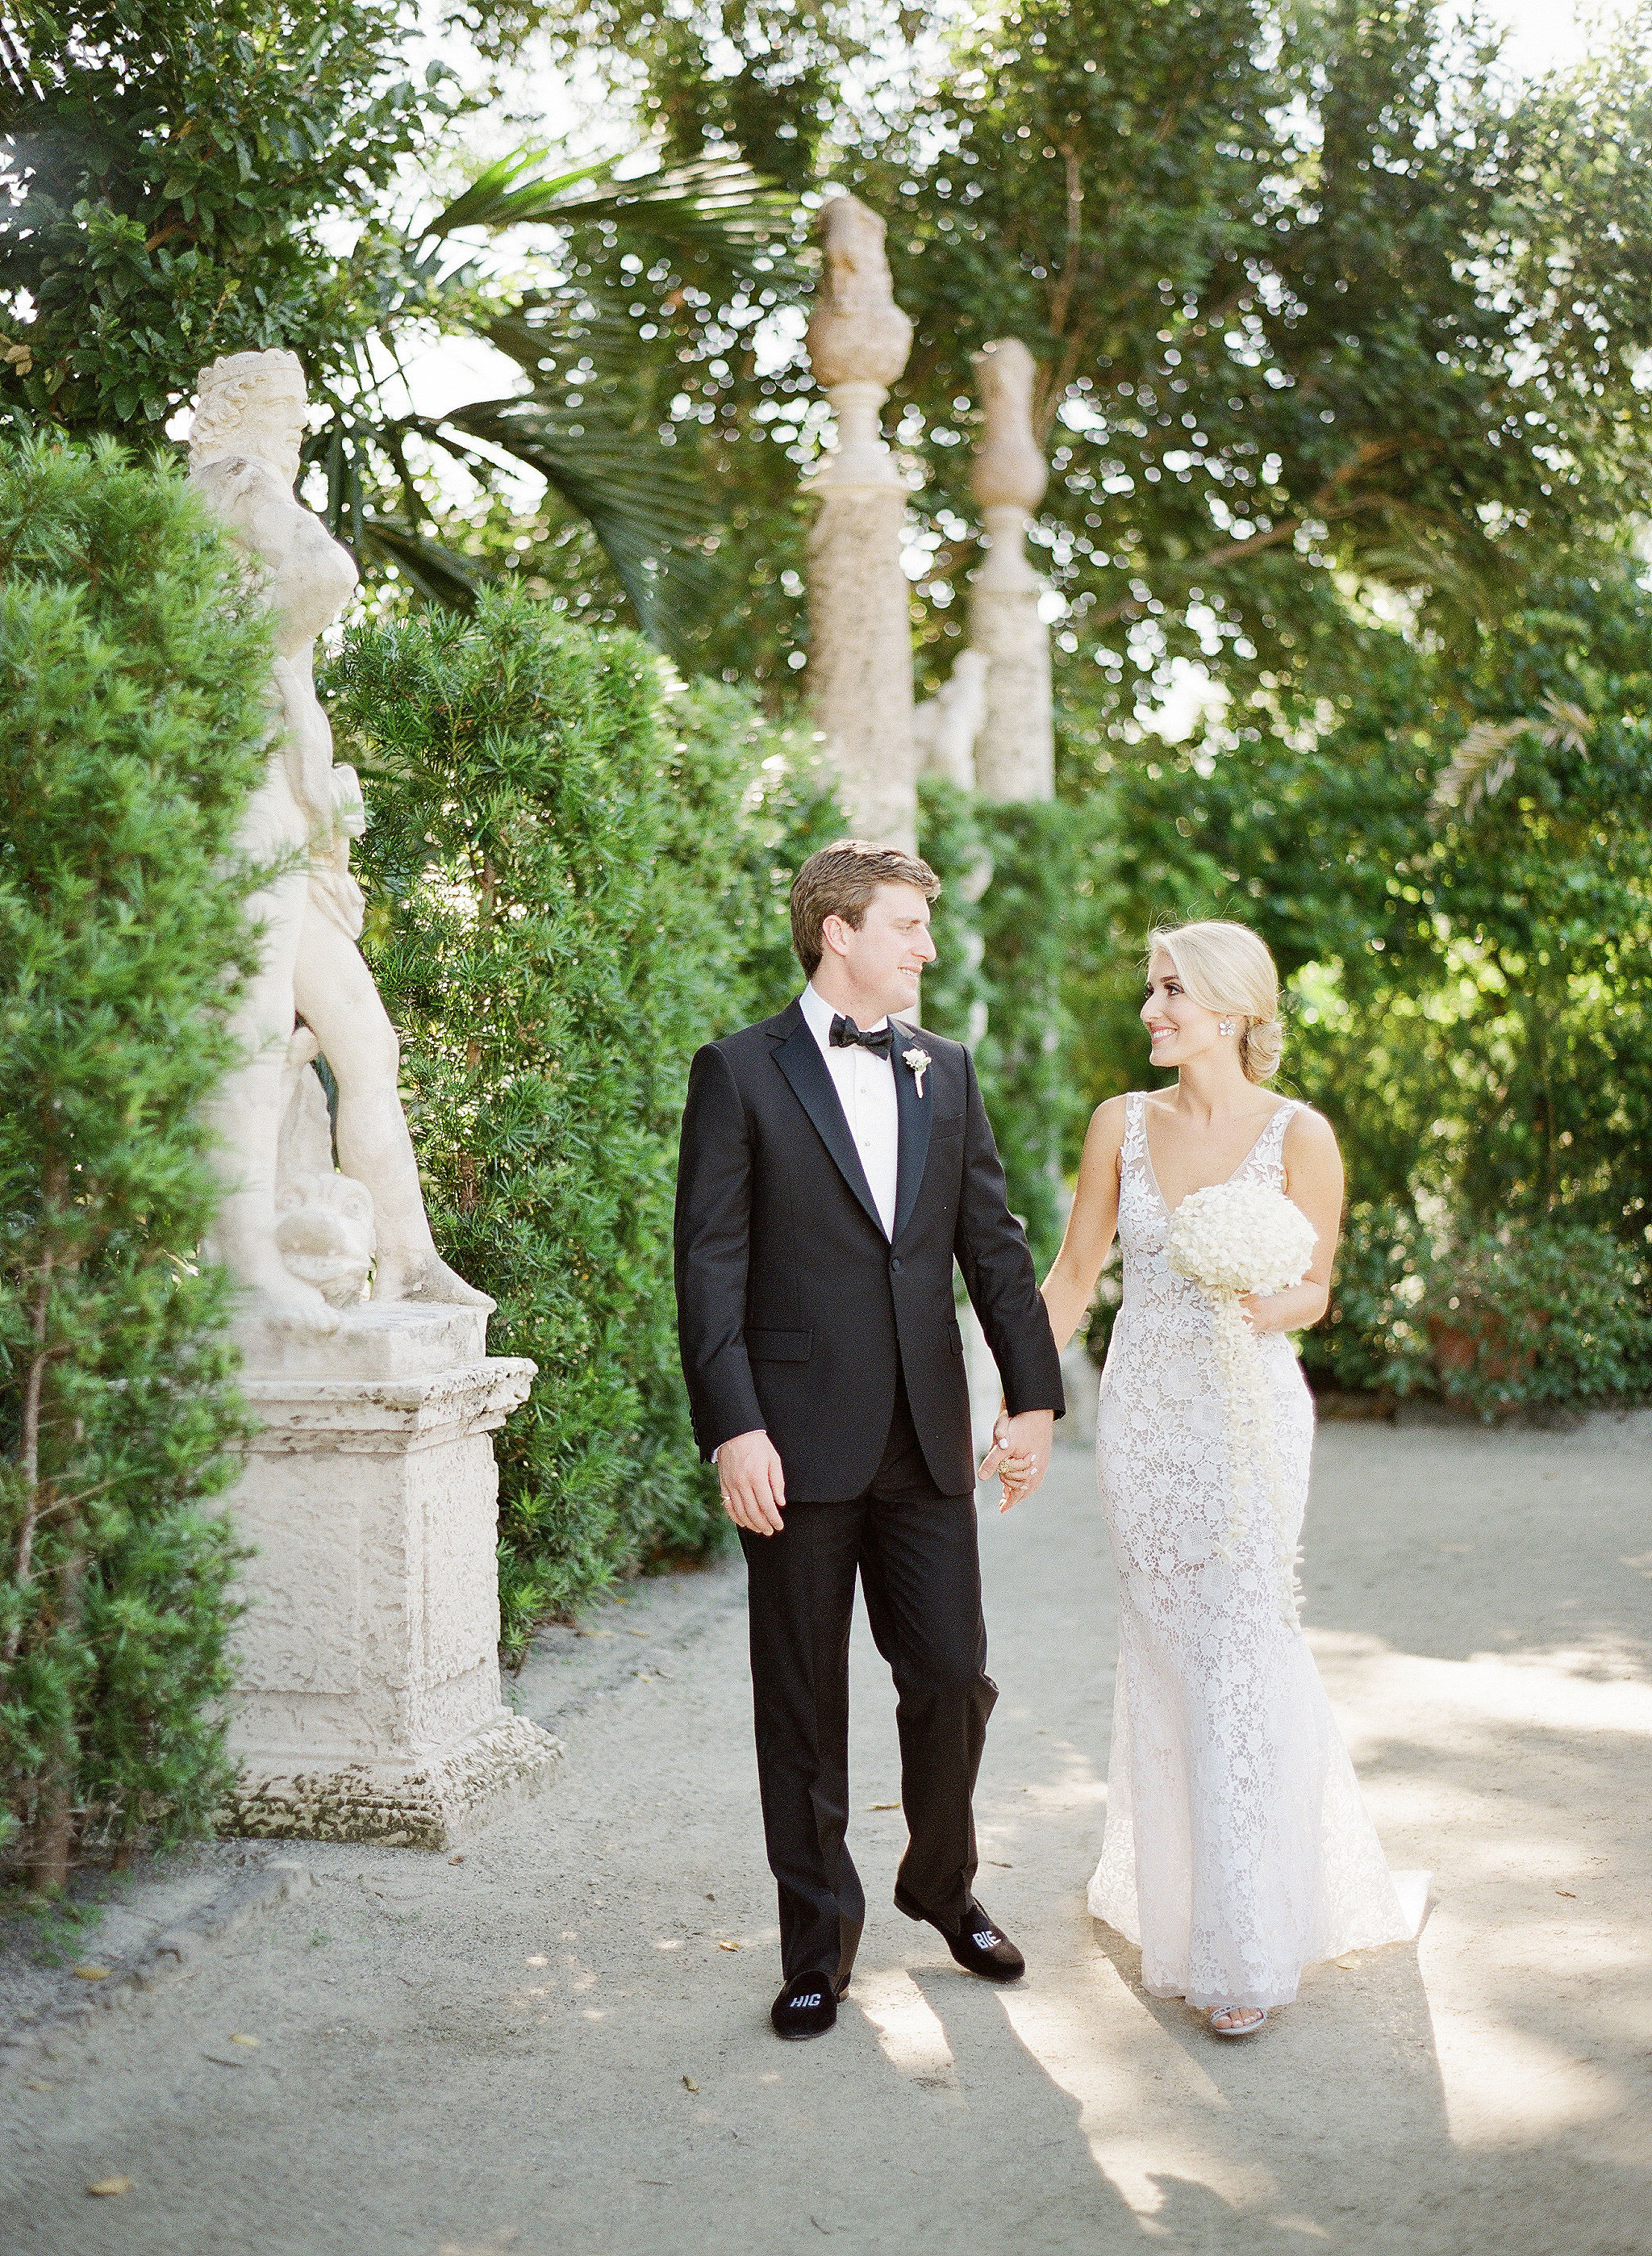 natalie jamey wedding couple